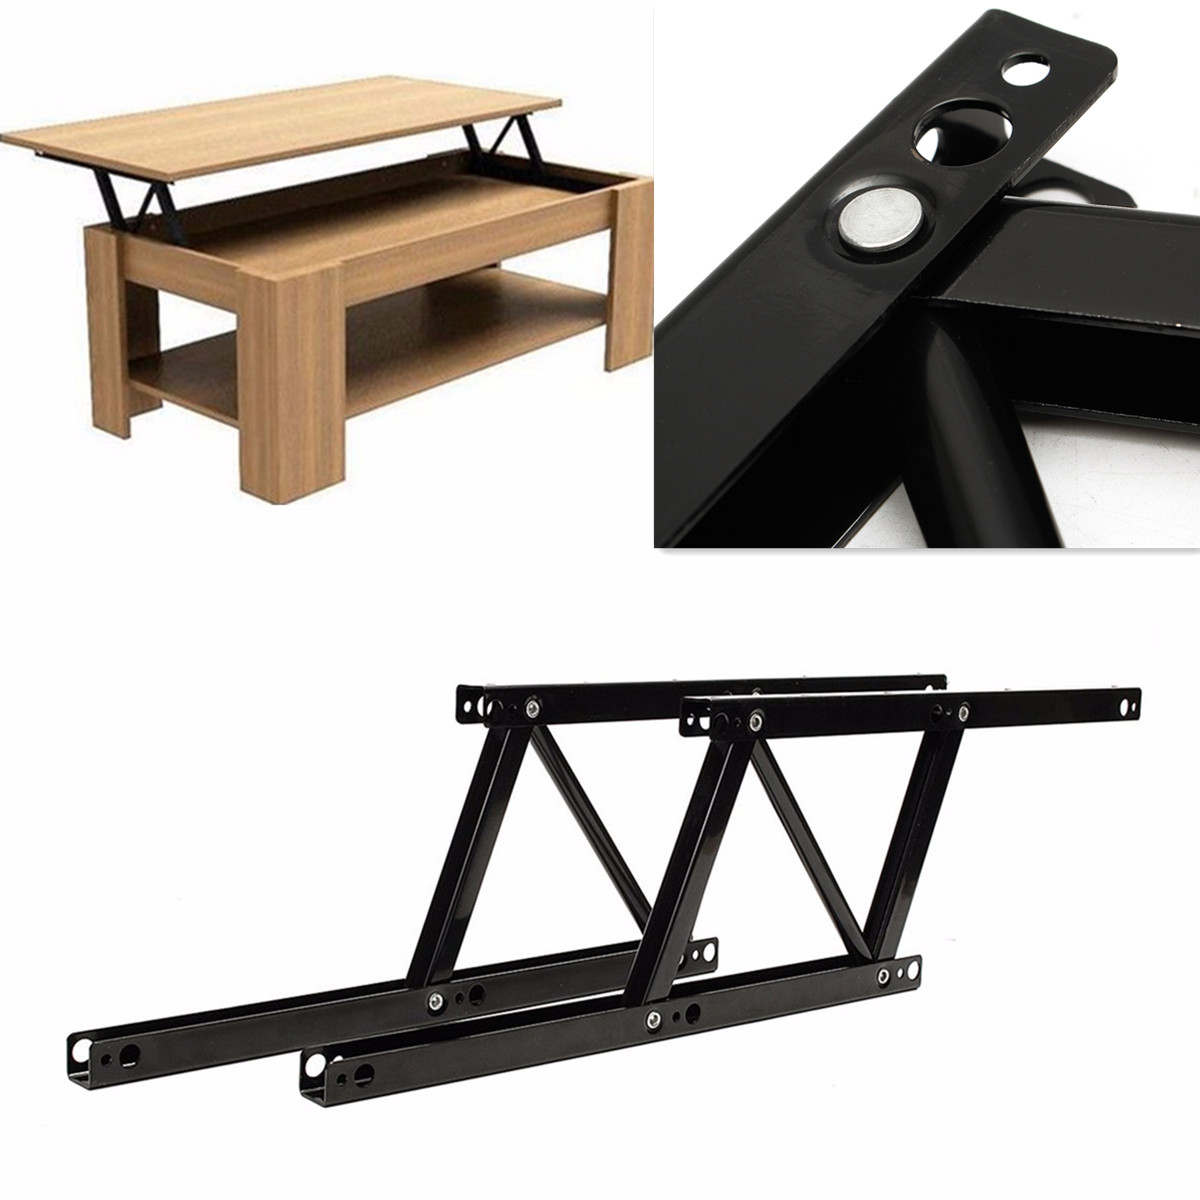 Home Lift Up Coffee Table Mechanism Hardware Fitting Furniture Spring Hinge DIY Materials Cabinet Hinges